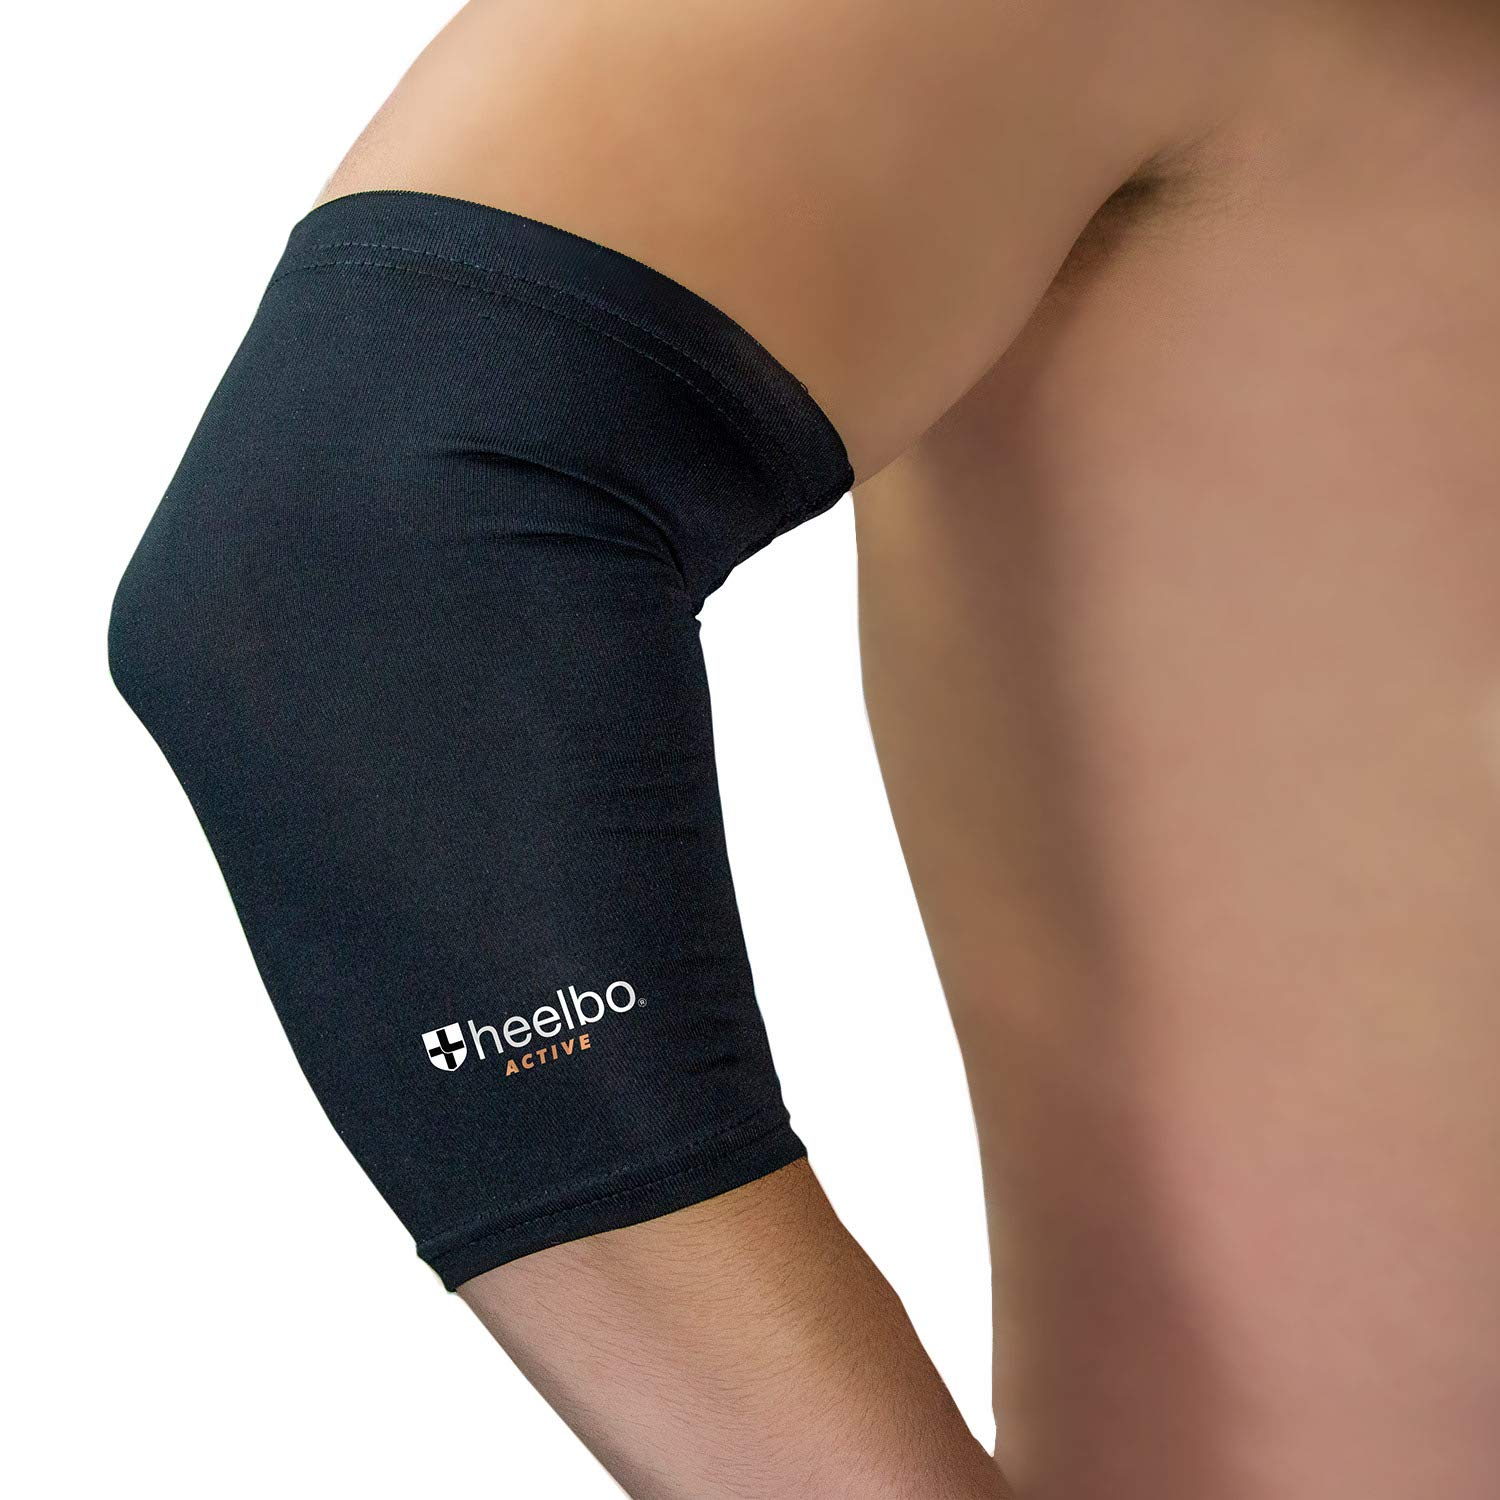 Heelbo Elbow Baltimore Mall Max 89% OFF Sleeve and with Inf Copper Compression